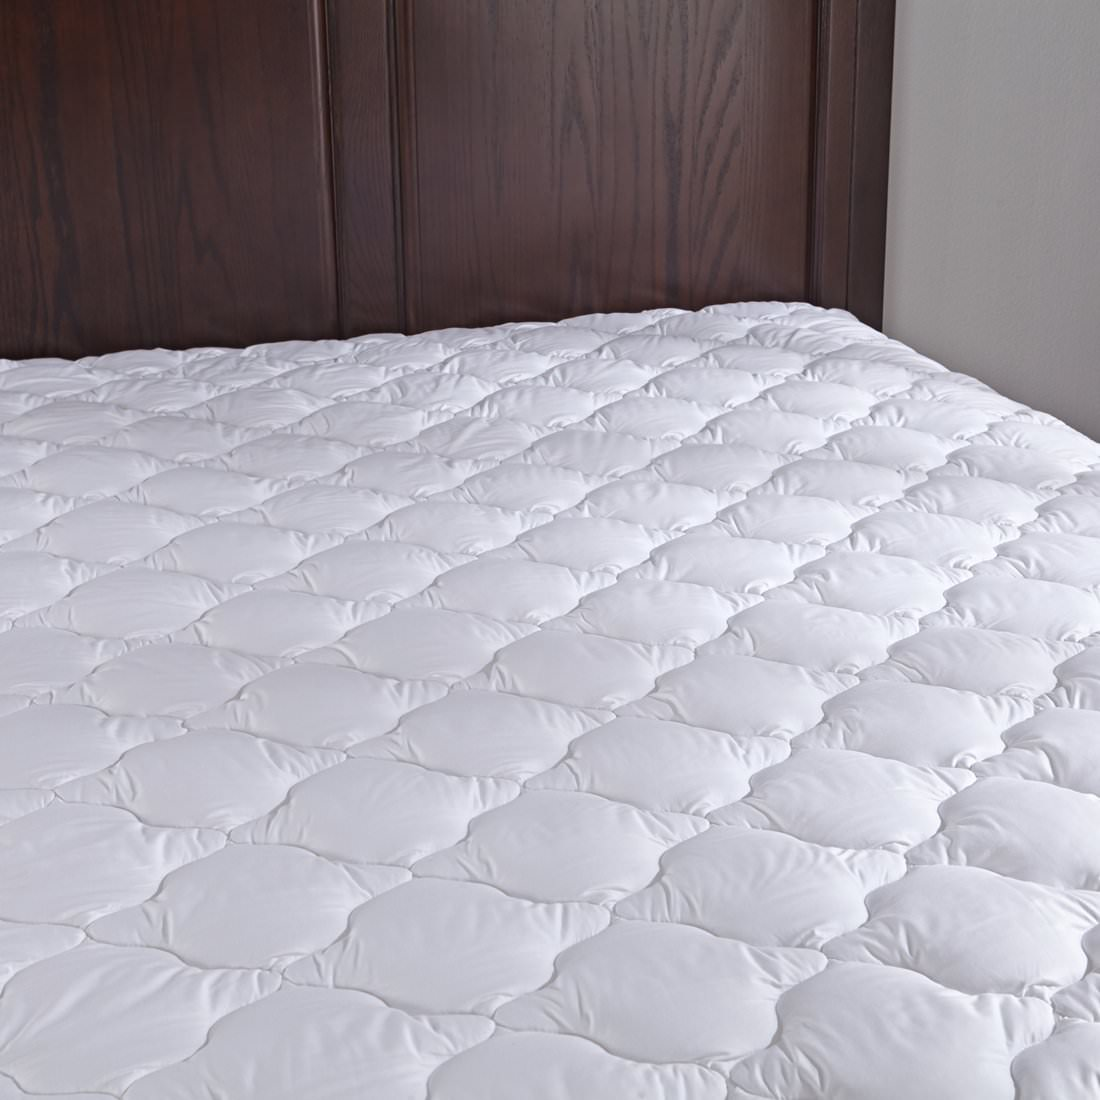 Puredown Down Alternative Mattress Pad/Topper-Quilted-100% Cotton Top, Four-leaf Clovers Pattern, Twin Size